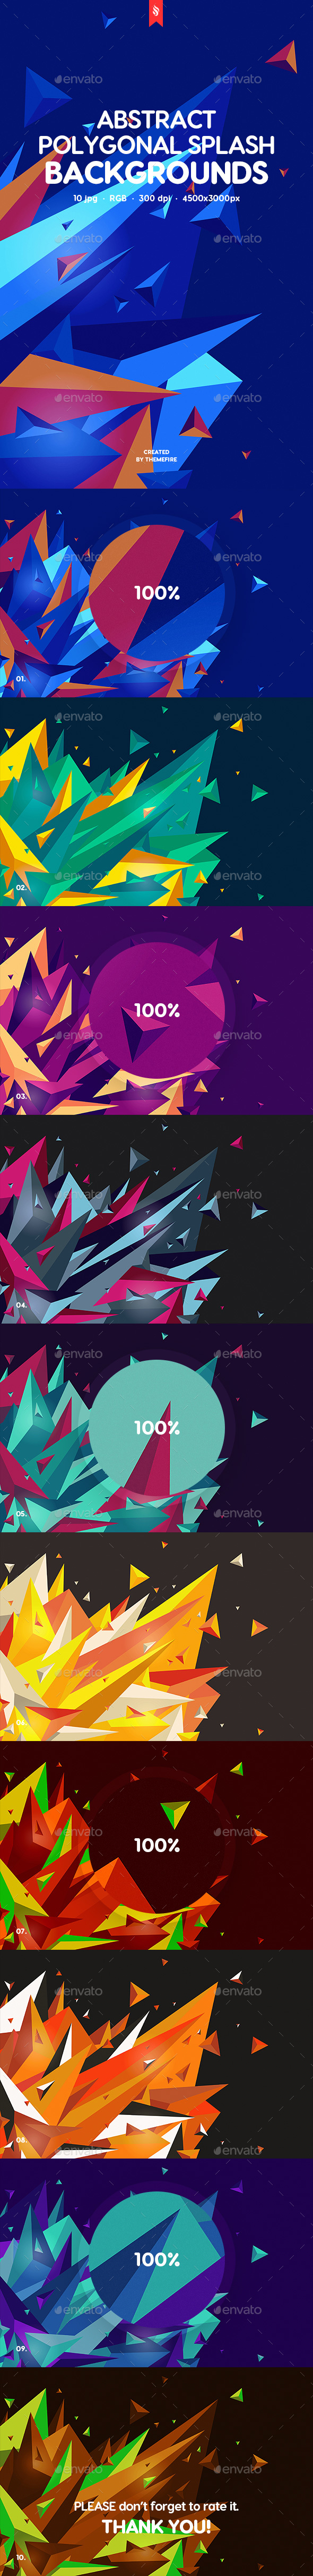 Polygonal Splash Backgrounds - Abstract Backgrounds